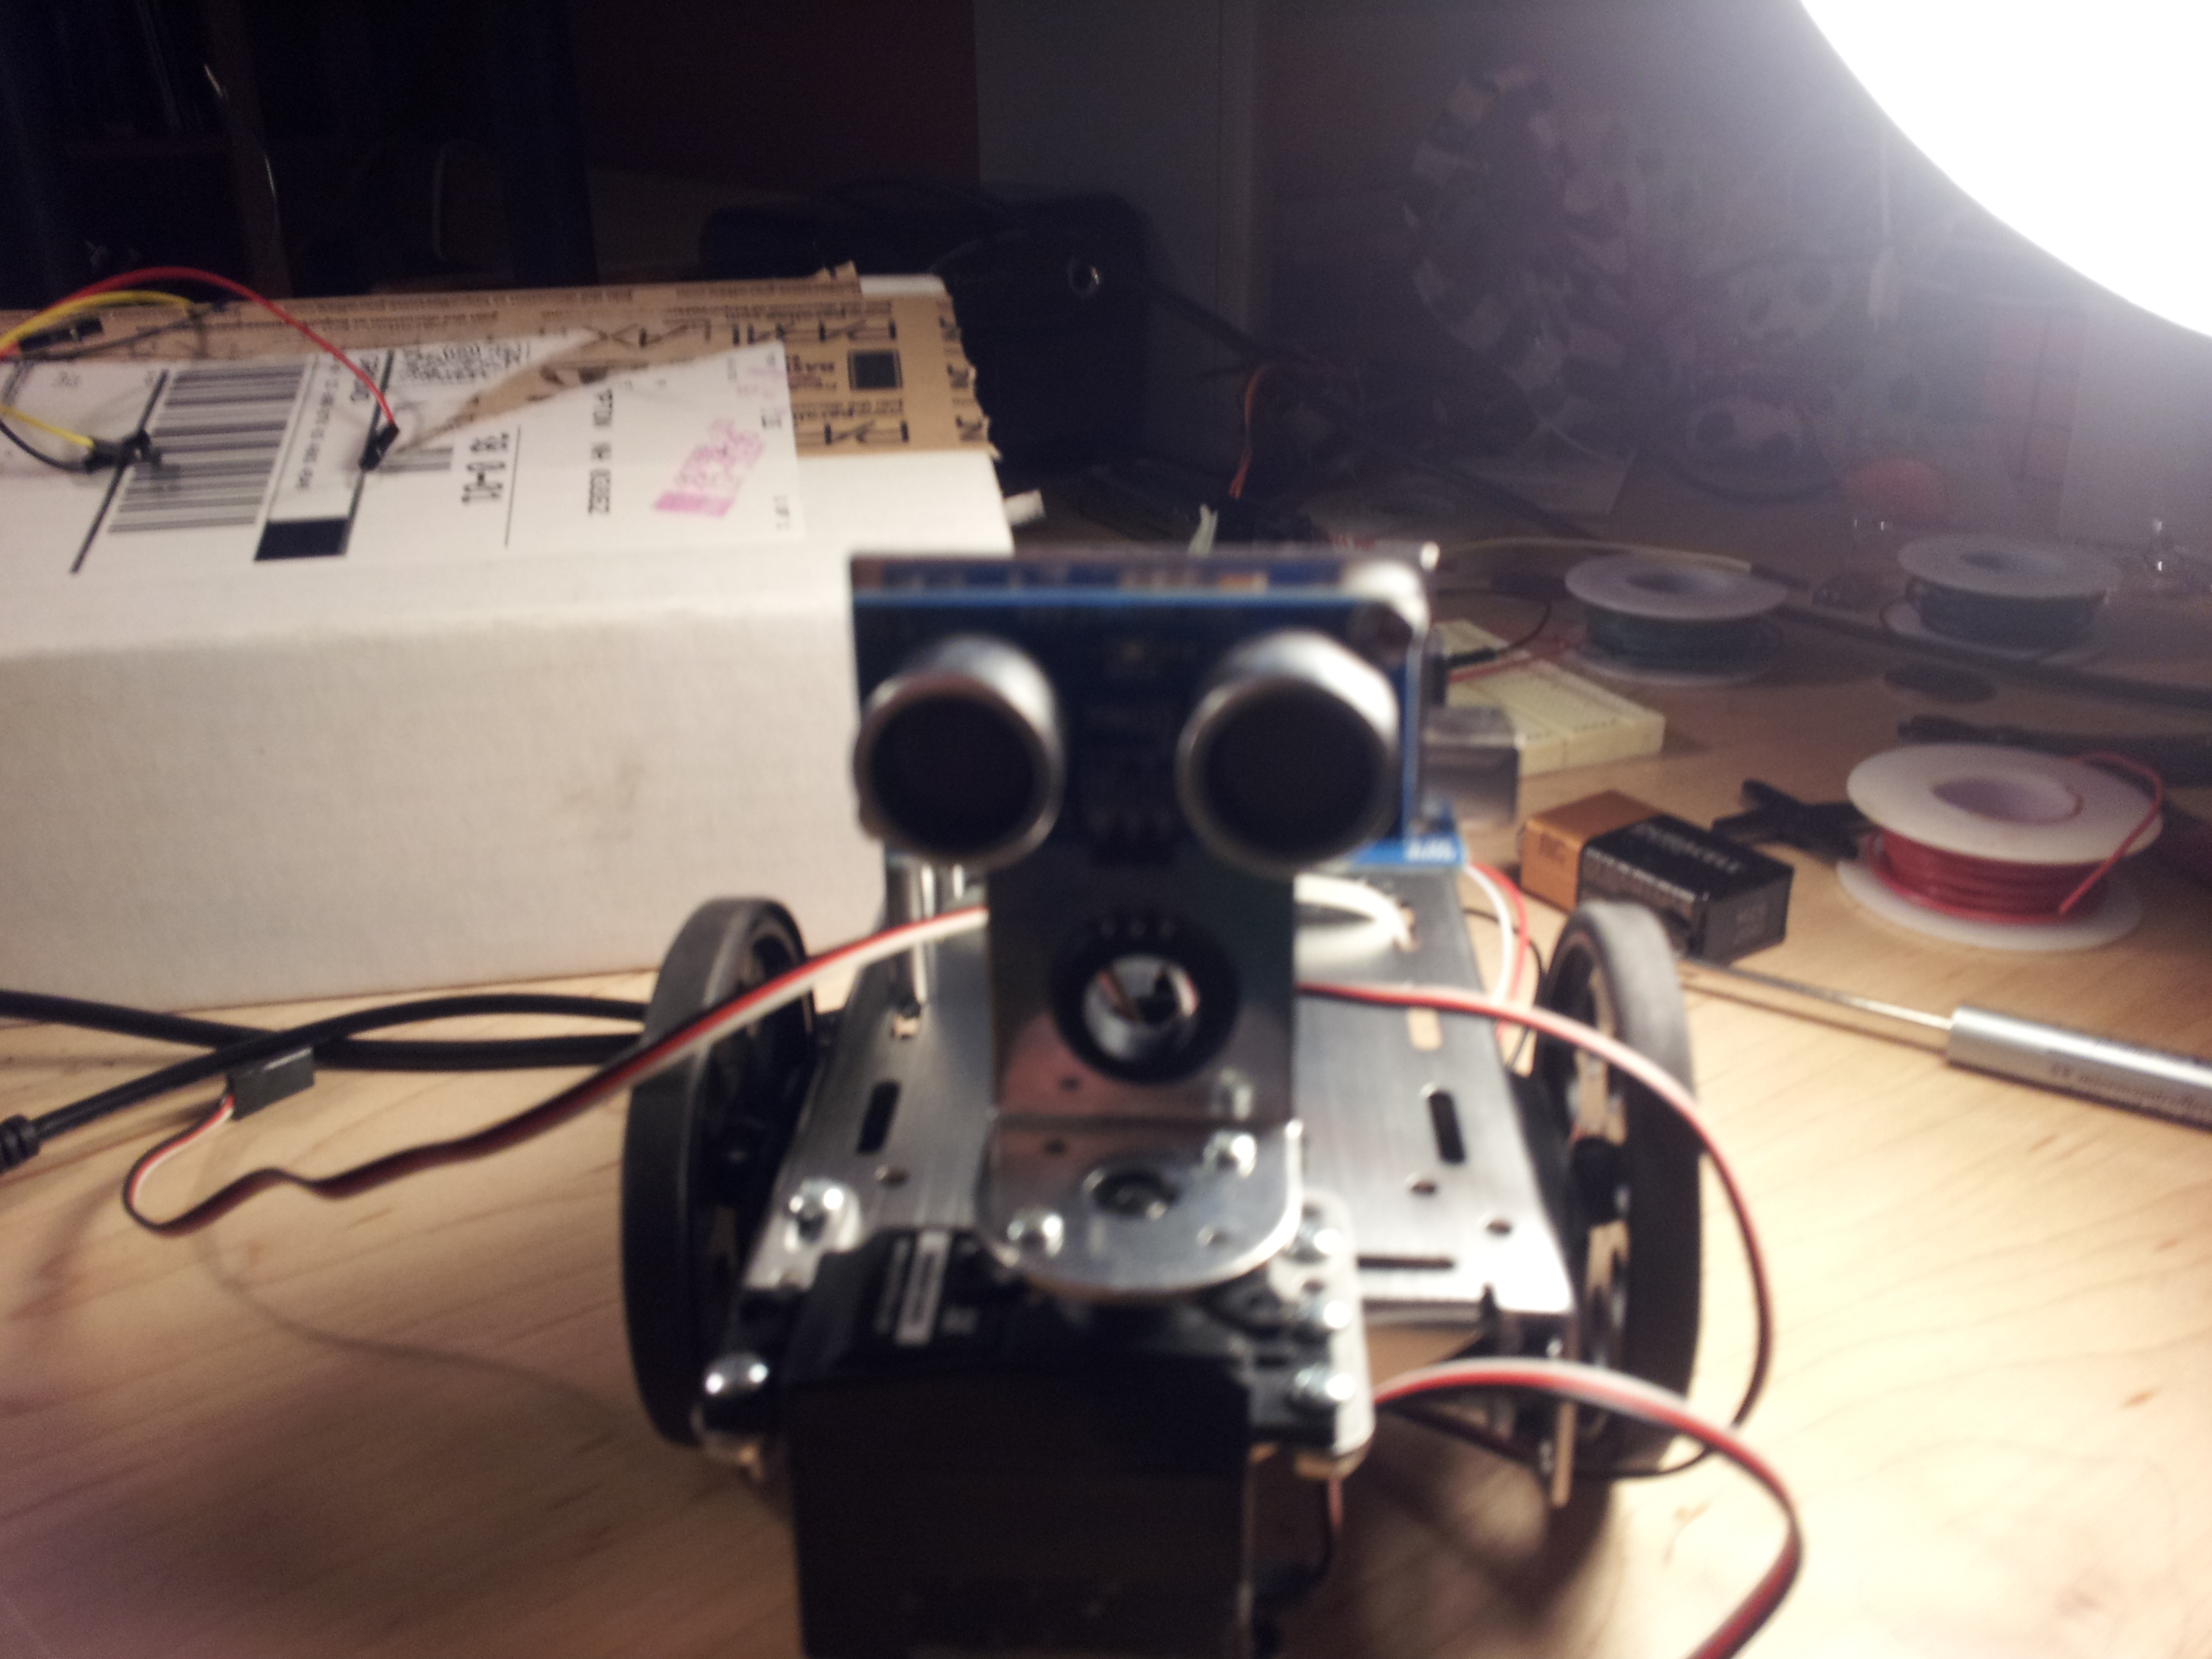 Picture of De-blinding the Robot